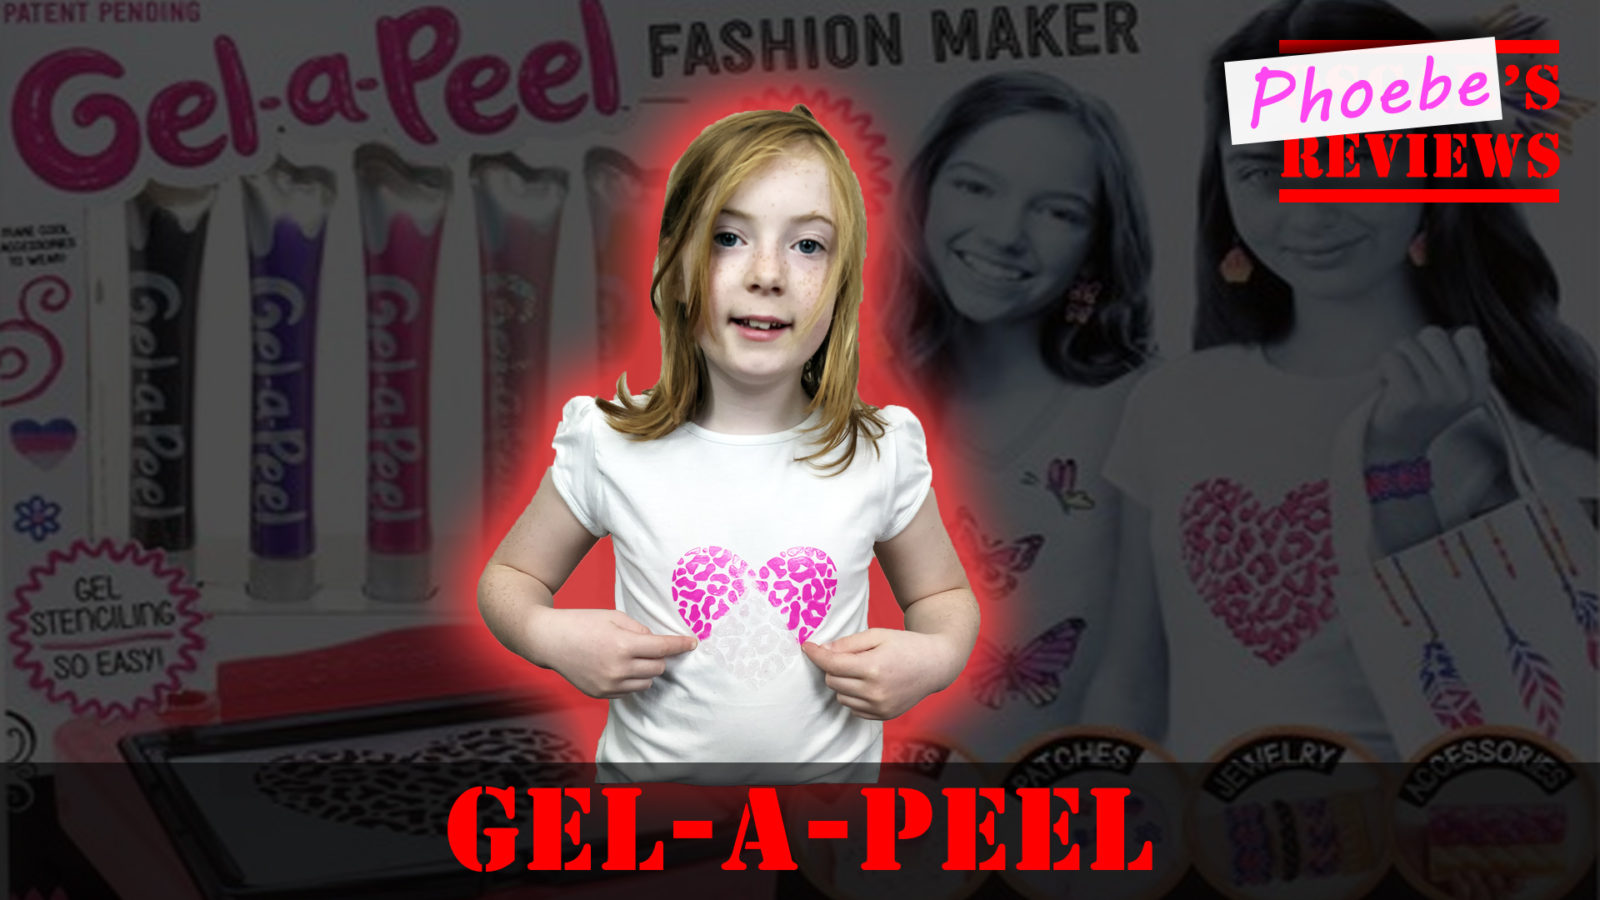 Design Your Own Clothes with the Gel-A-Peel Fashion Maker (Gift Ideas)